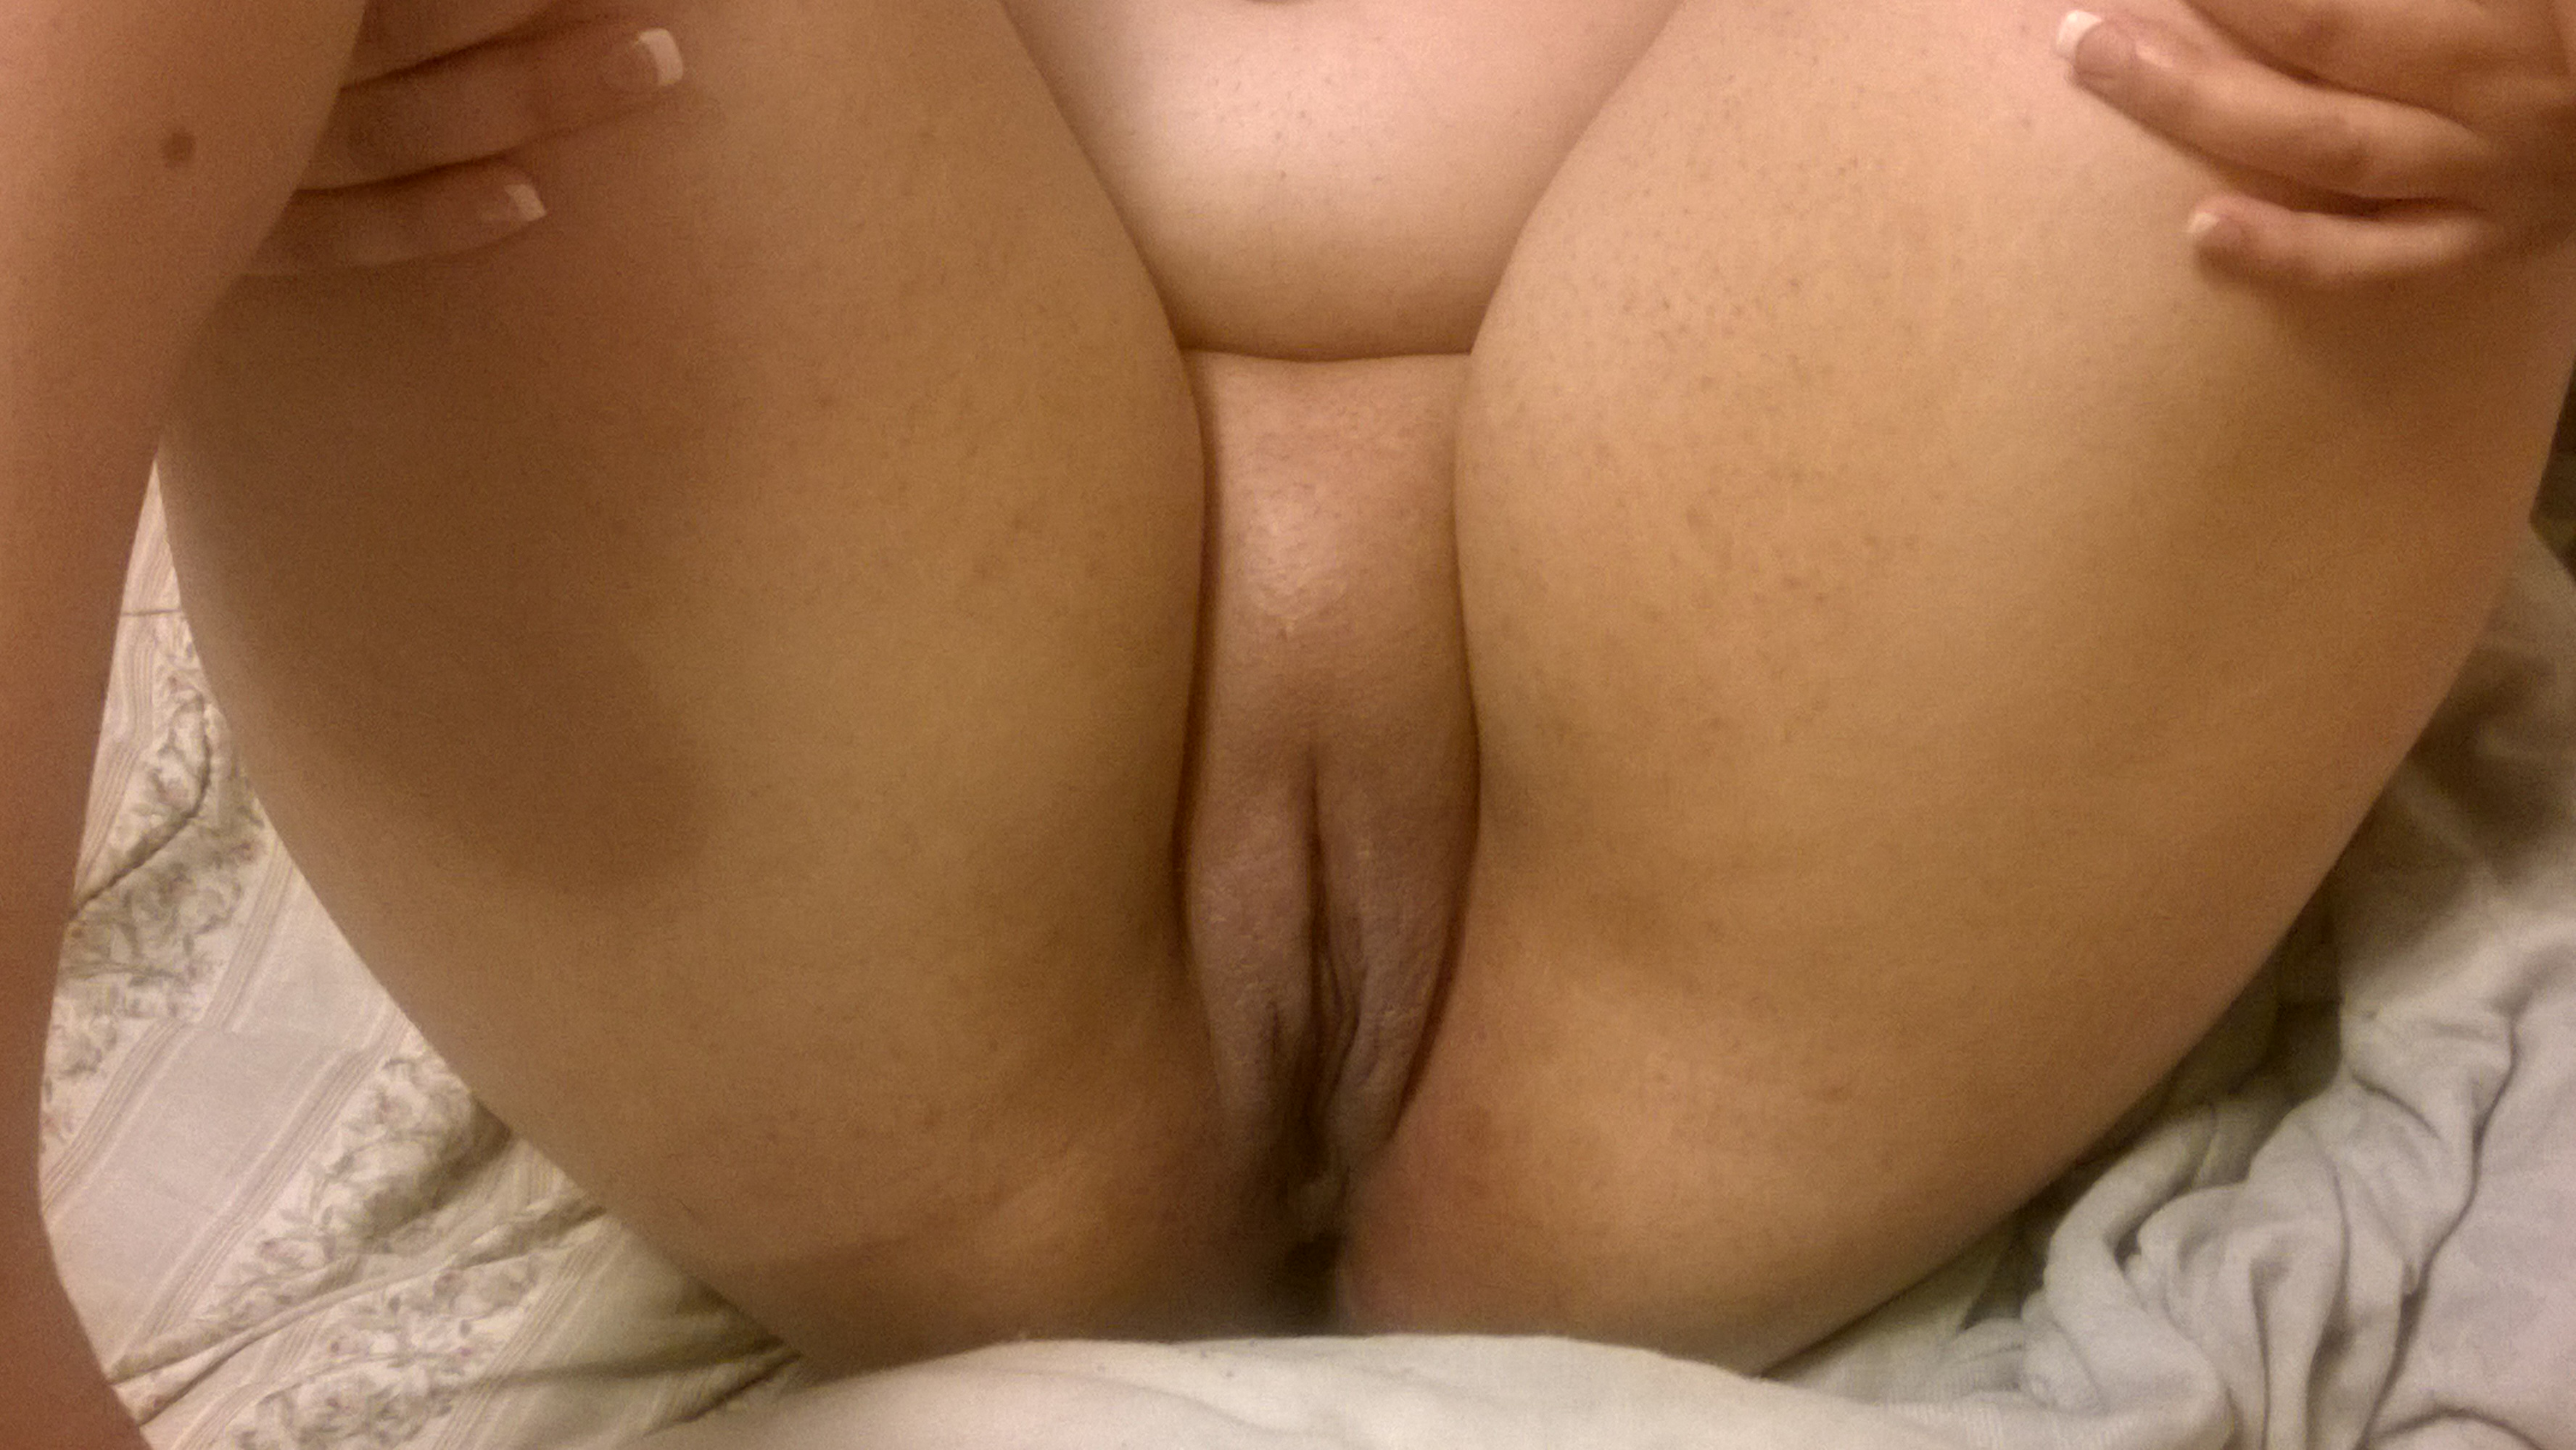 Nice fat pussy pic